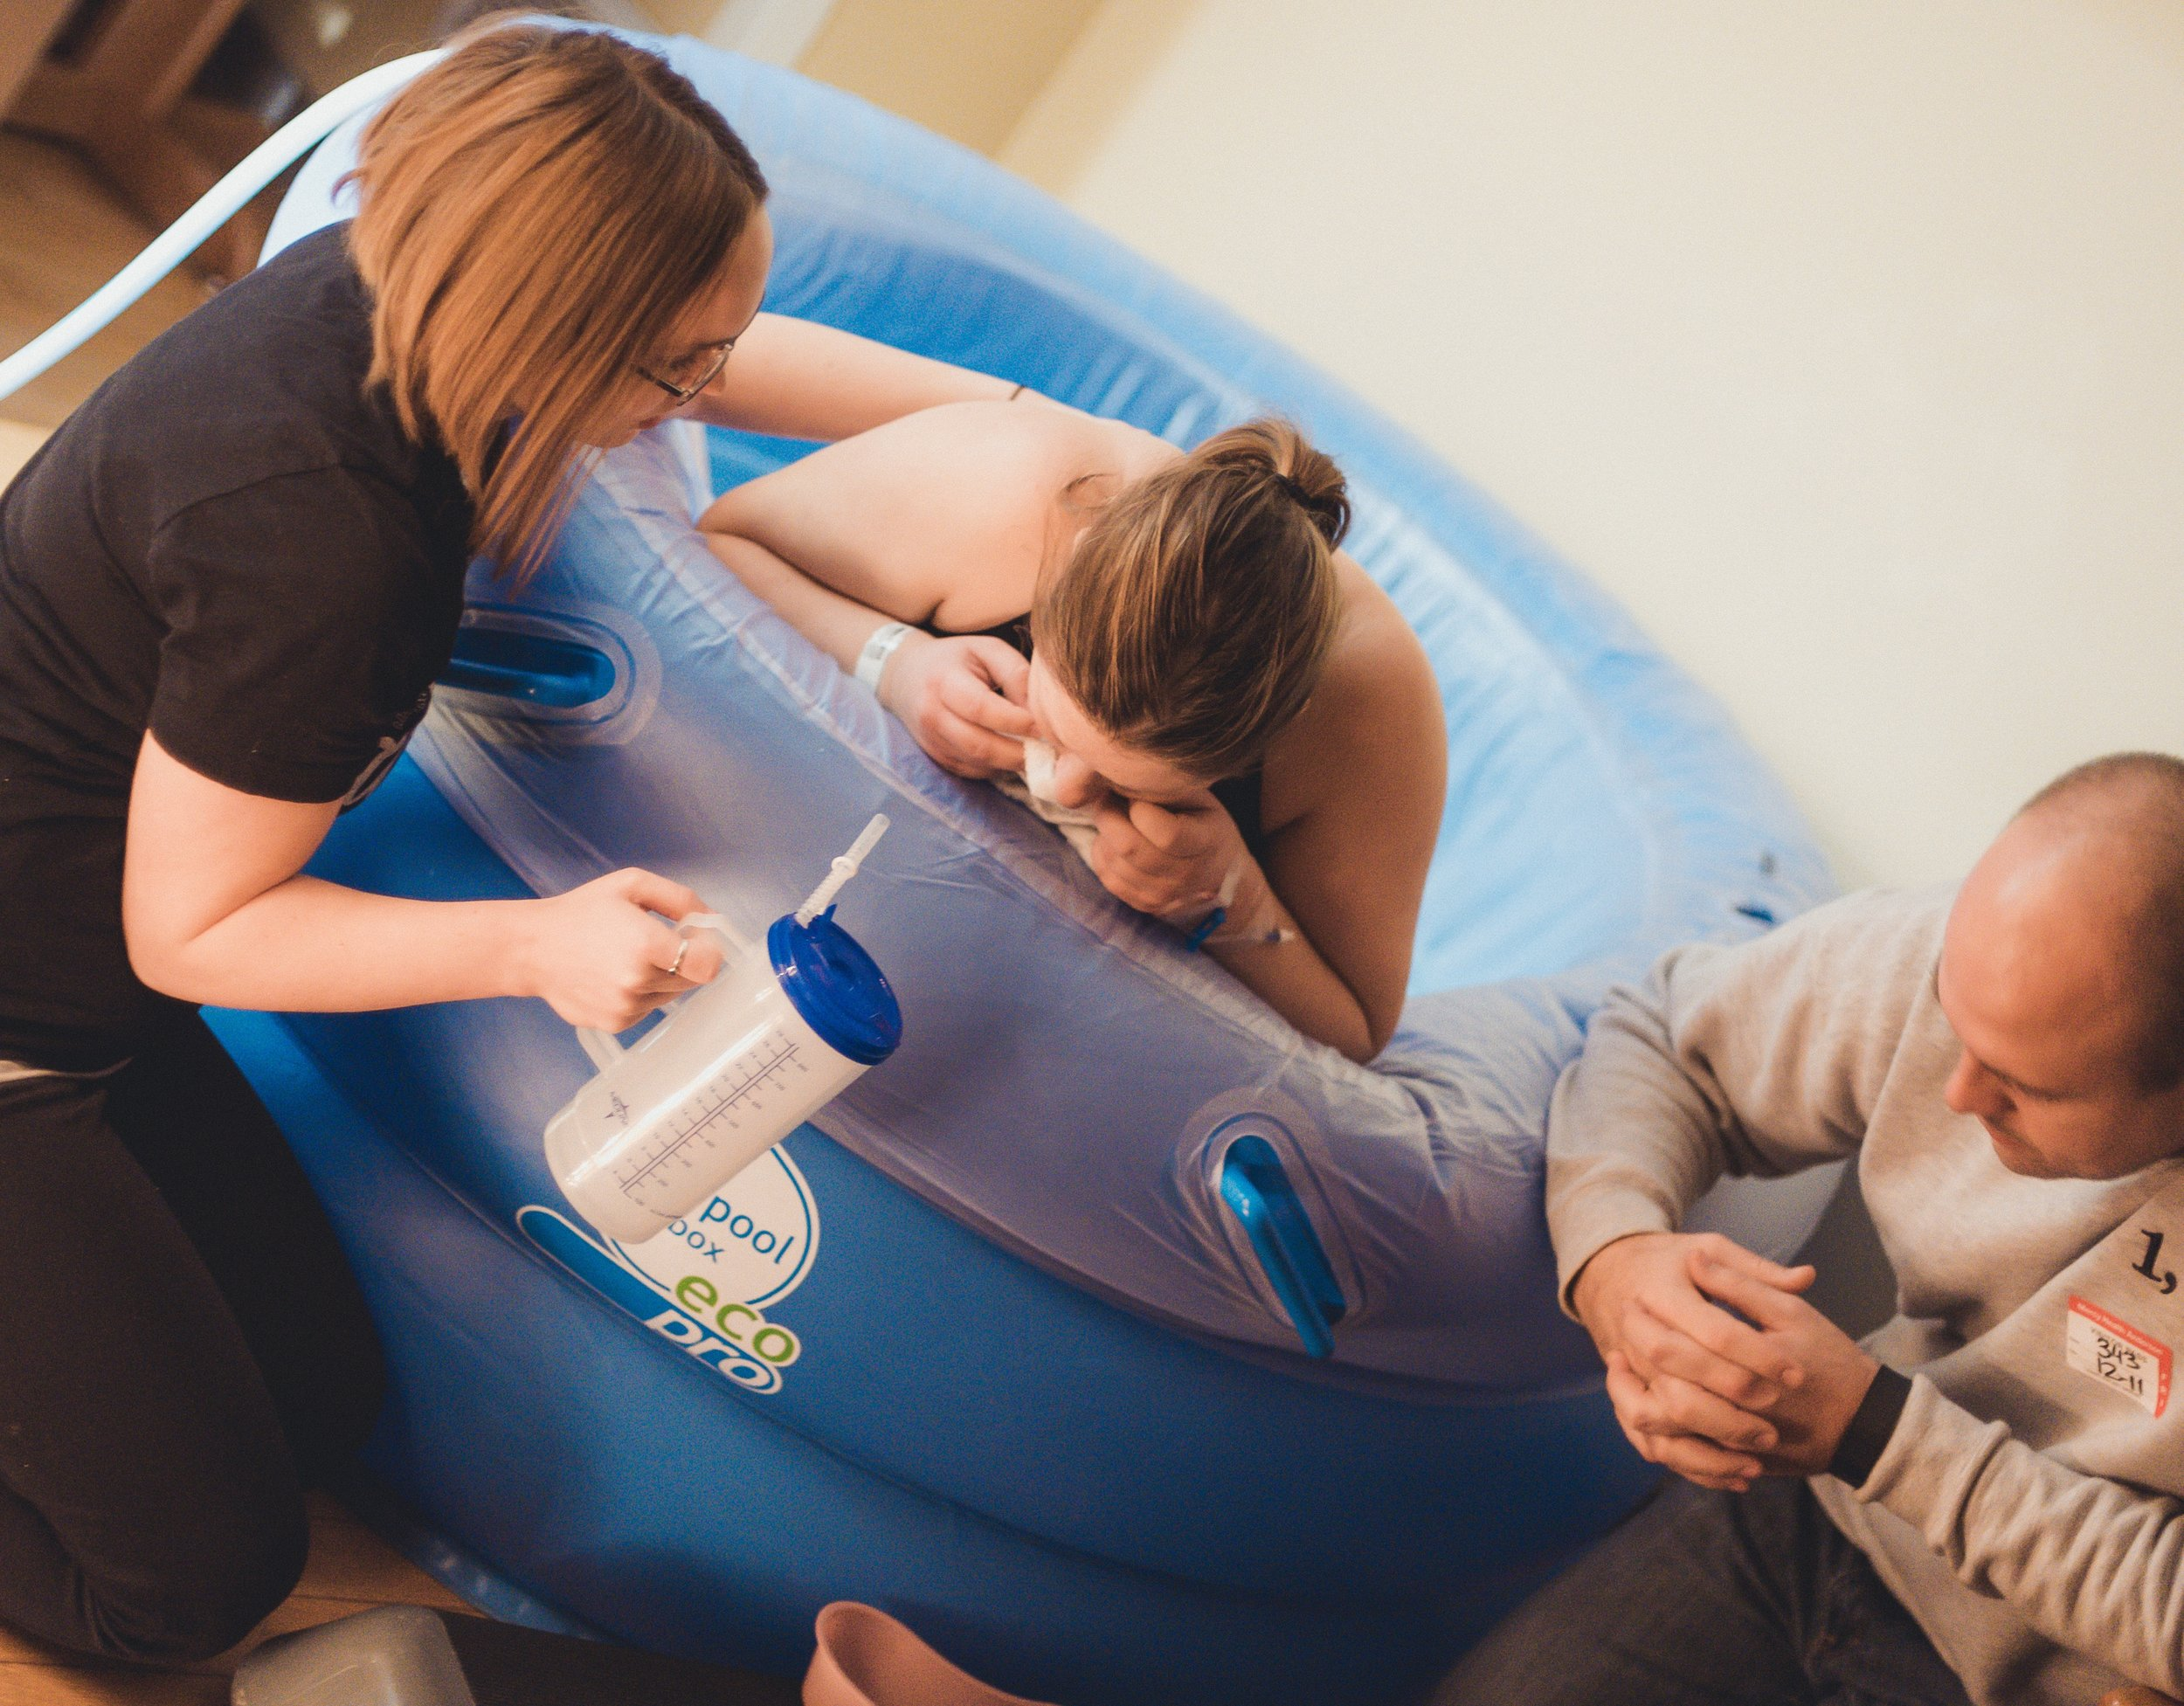 Our doulas have experience supporting labor and birth in the water.